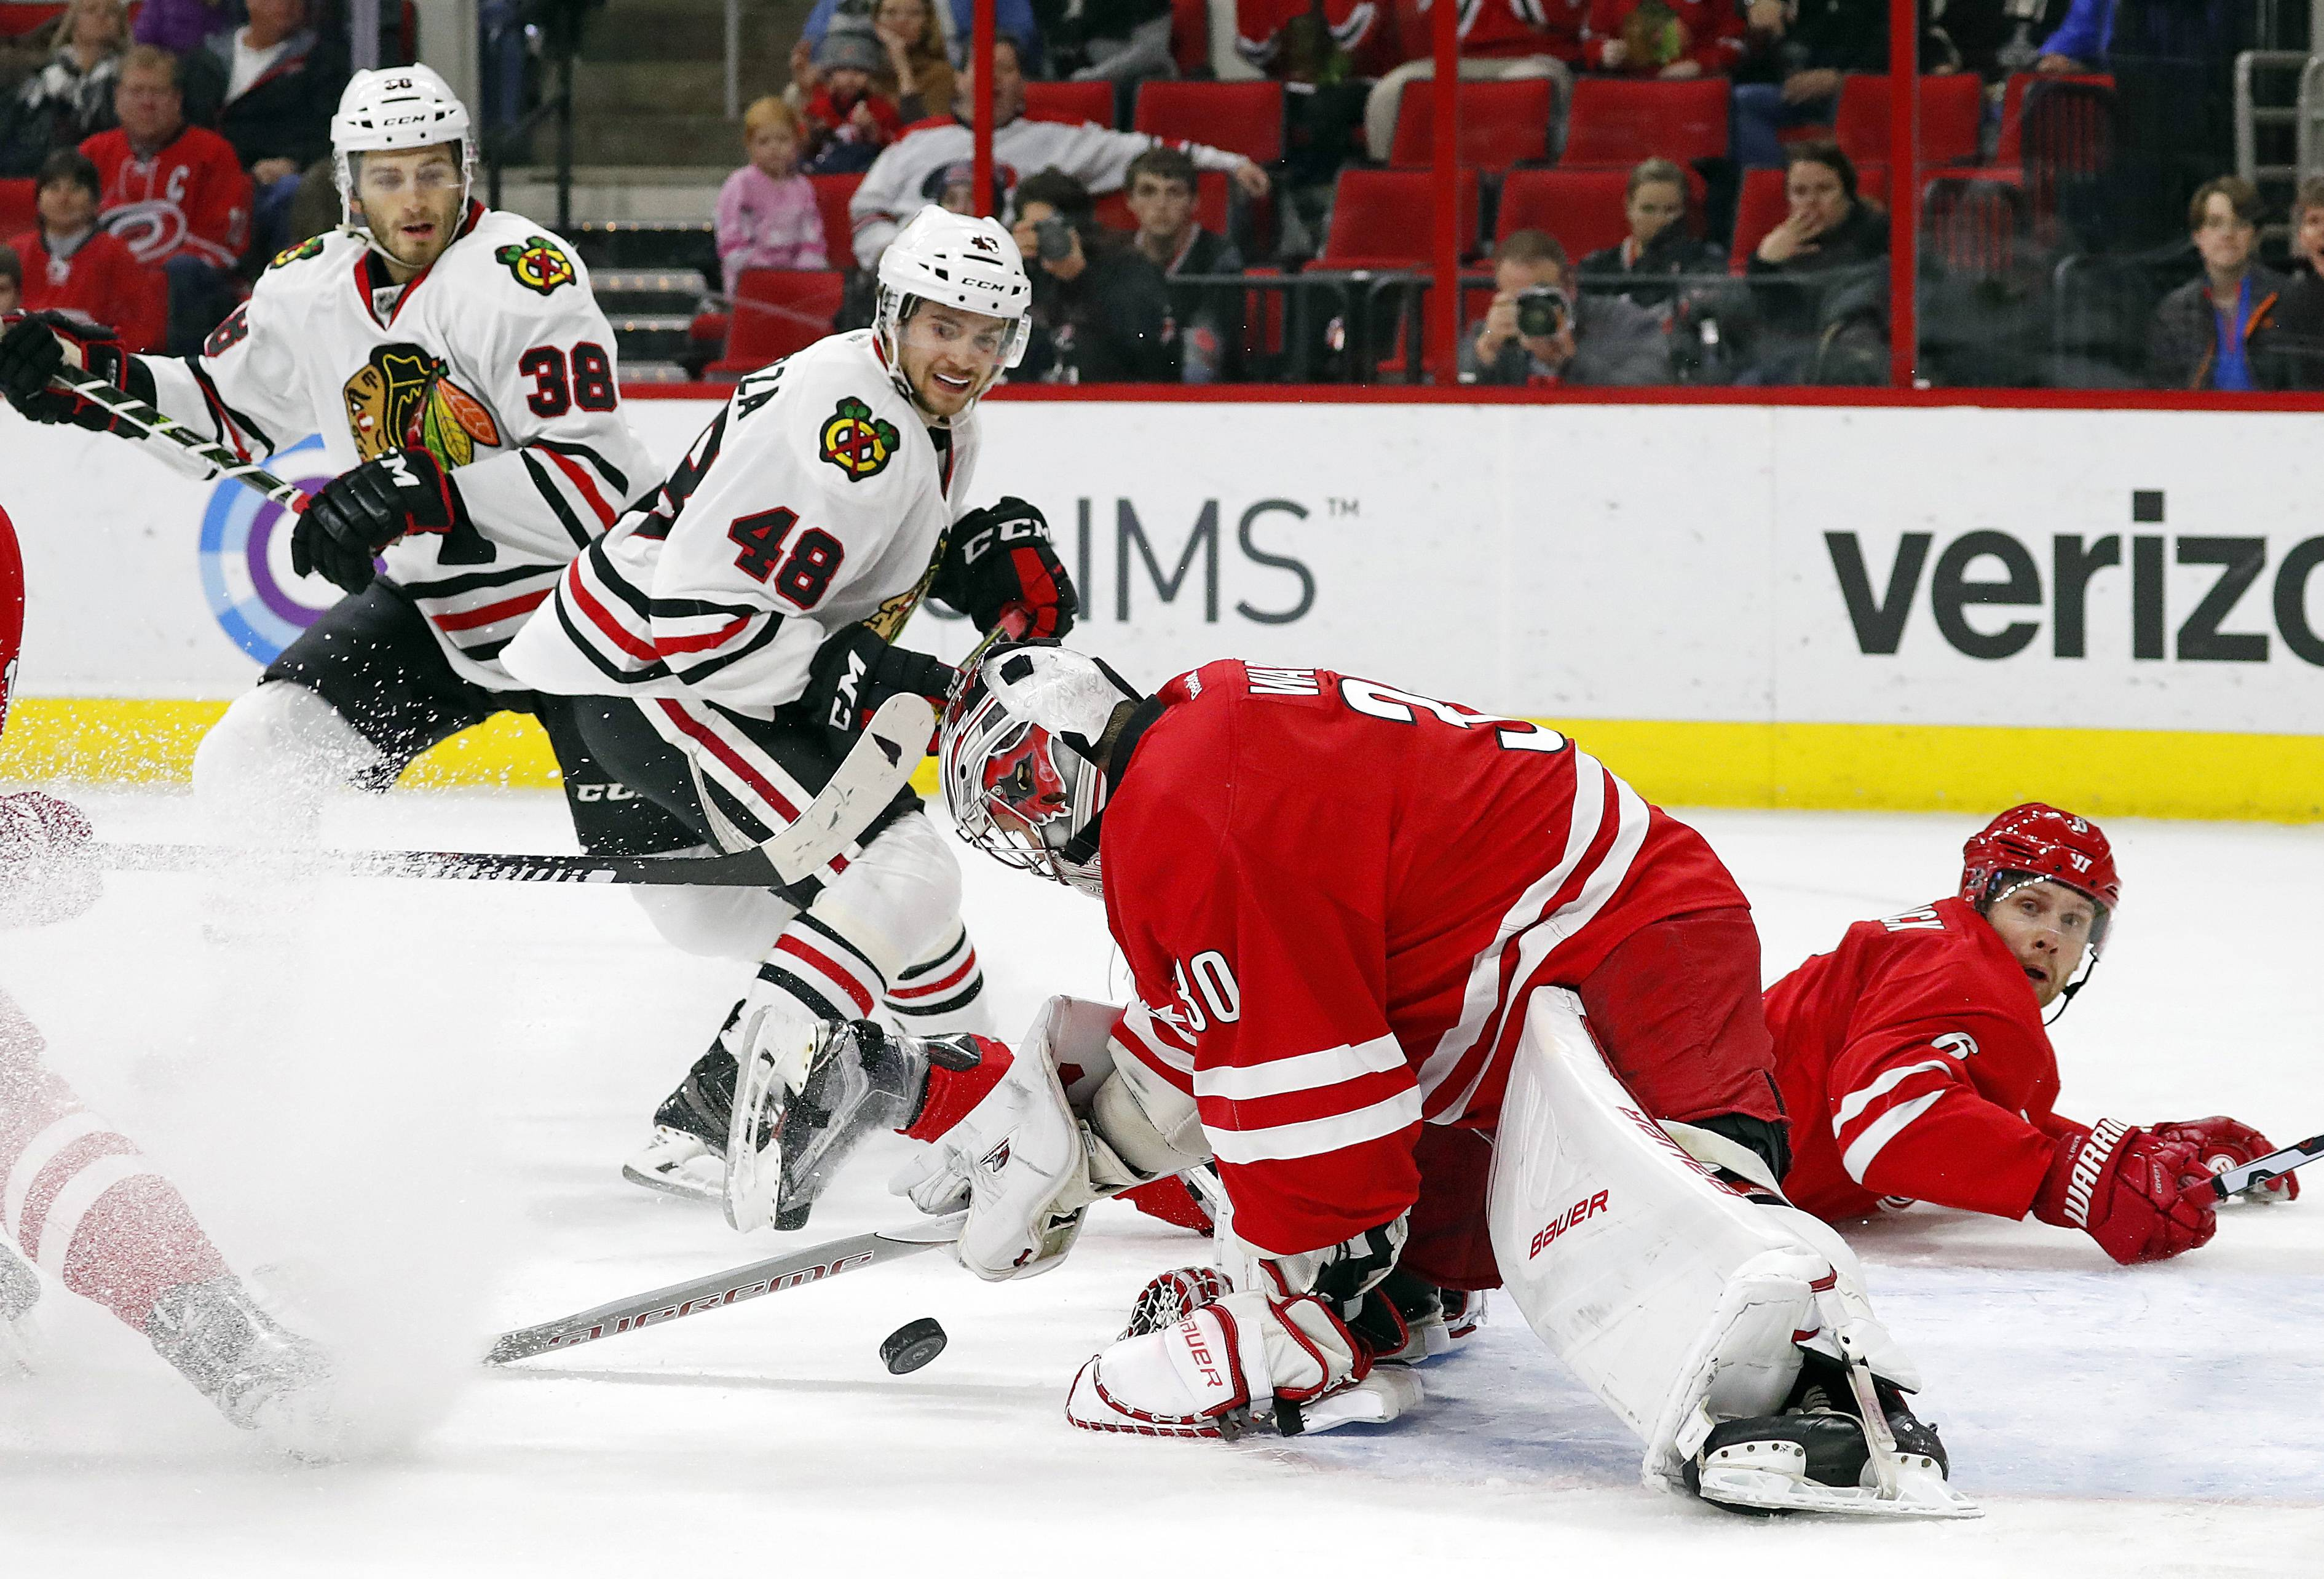 Carolina goalie Cam Ward (30) freezes the puck after it is shot by Blackhawks' Vinnie Hinostroza (48) with Hawks Ryan Hartman (38) looking on during a 2016 game against the Hurricanwes. As each day comes off the calendar with Corey Crawford unable to join his teammates for practice, it's looking more and more like Ward will start in net when the Blackhawks open their season at Ottawa on Oct. 4.